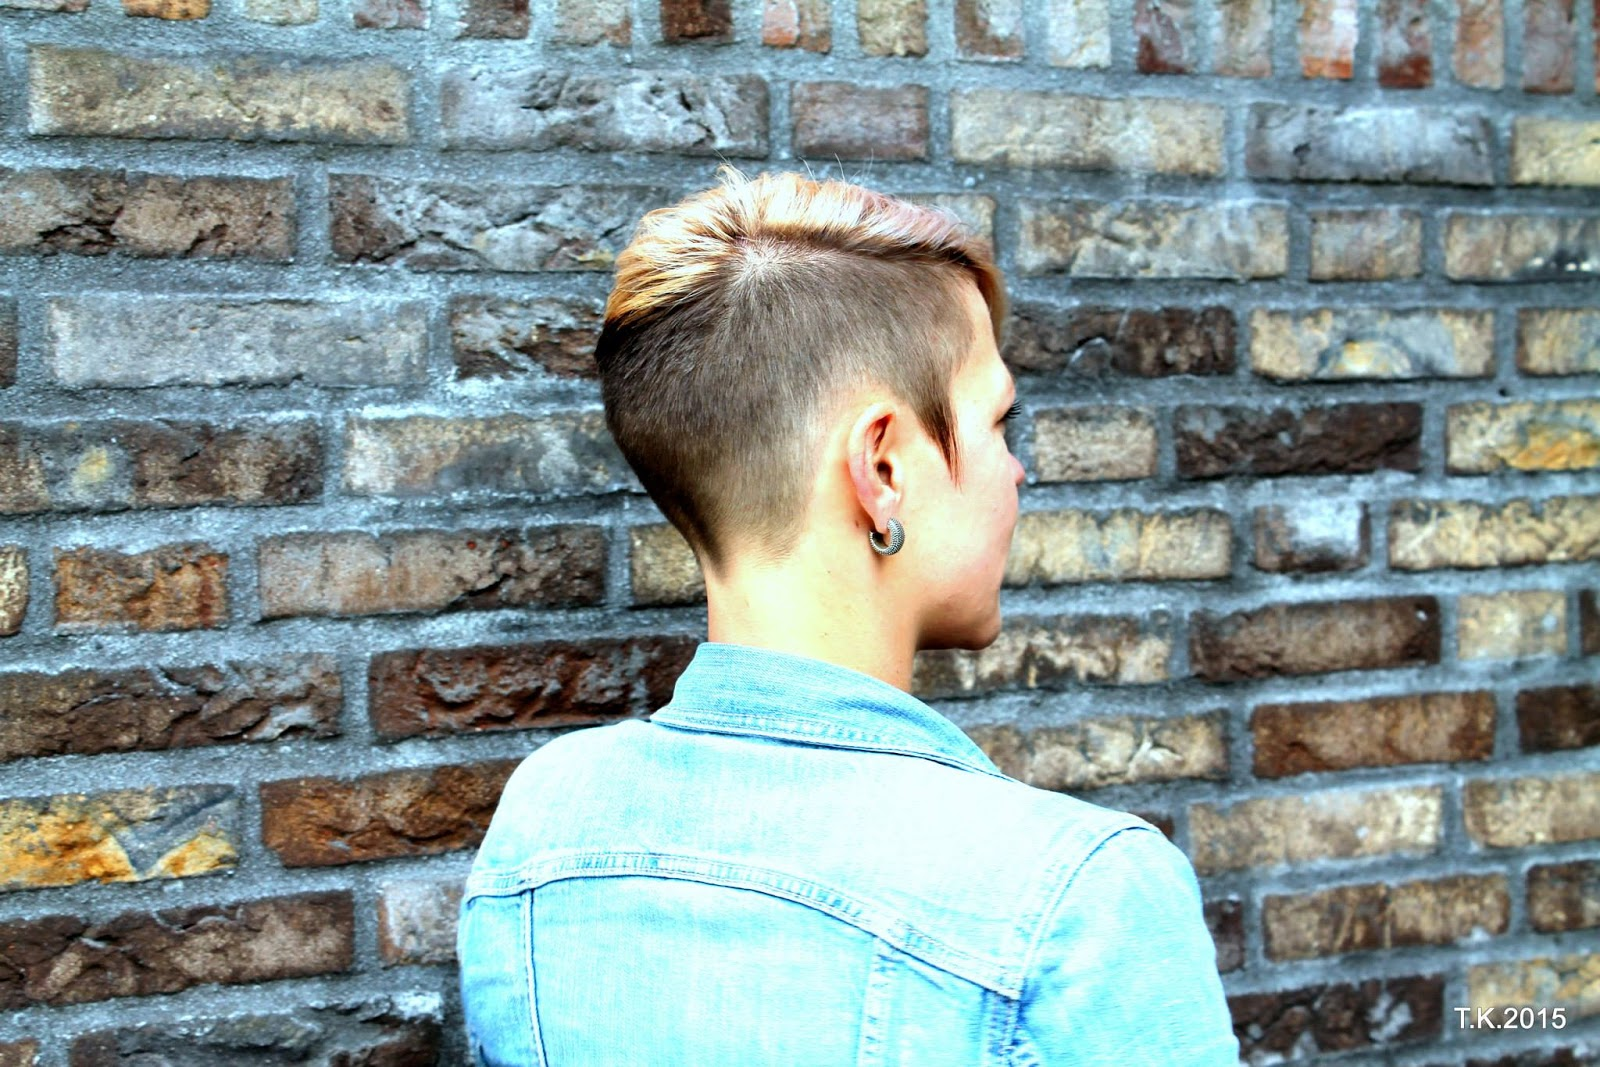 Beautiful Haircuts By Theo Knoop Images And Videos The